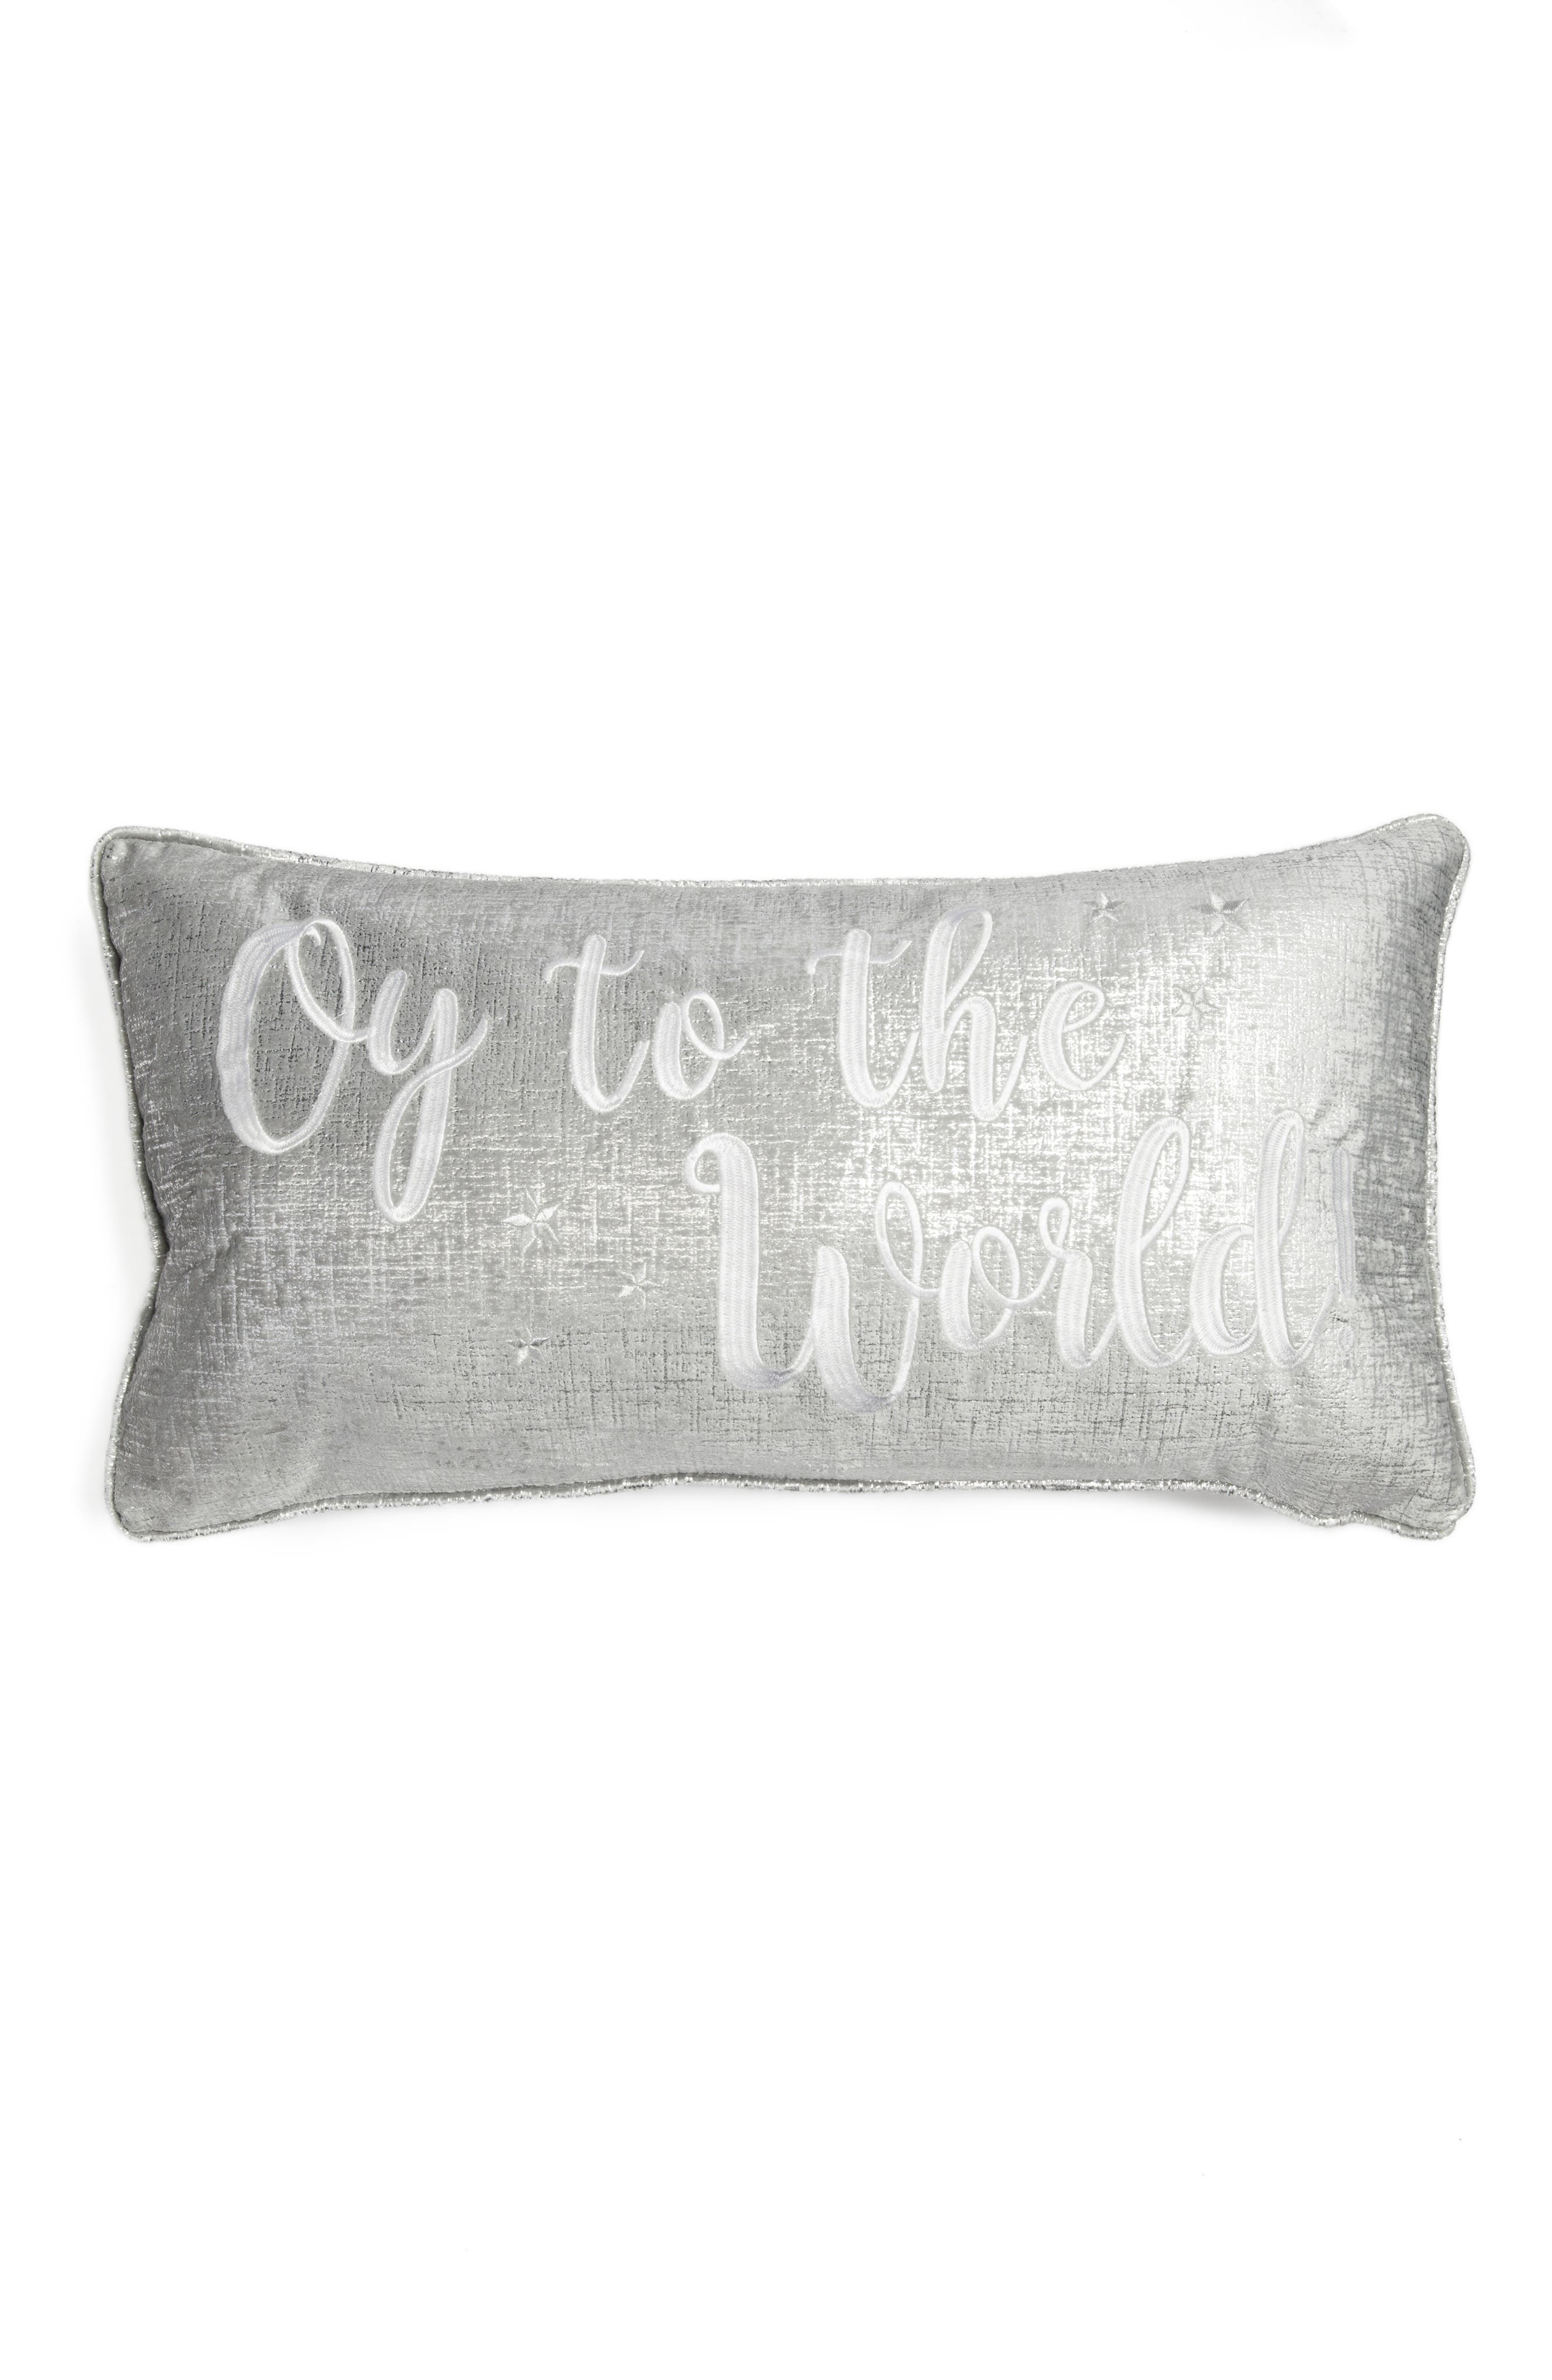 Oy to the World Accent Pillow,                             Main thumbnail 1, color,                             040